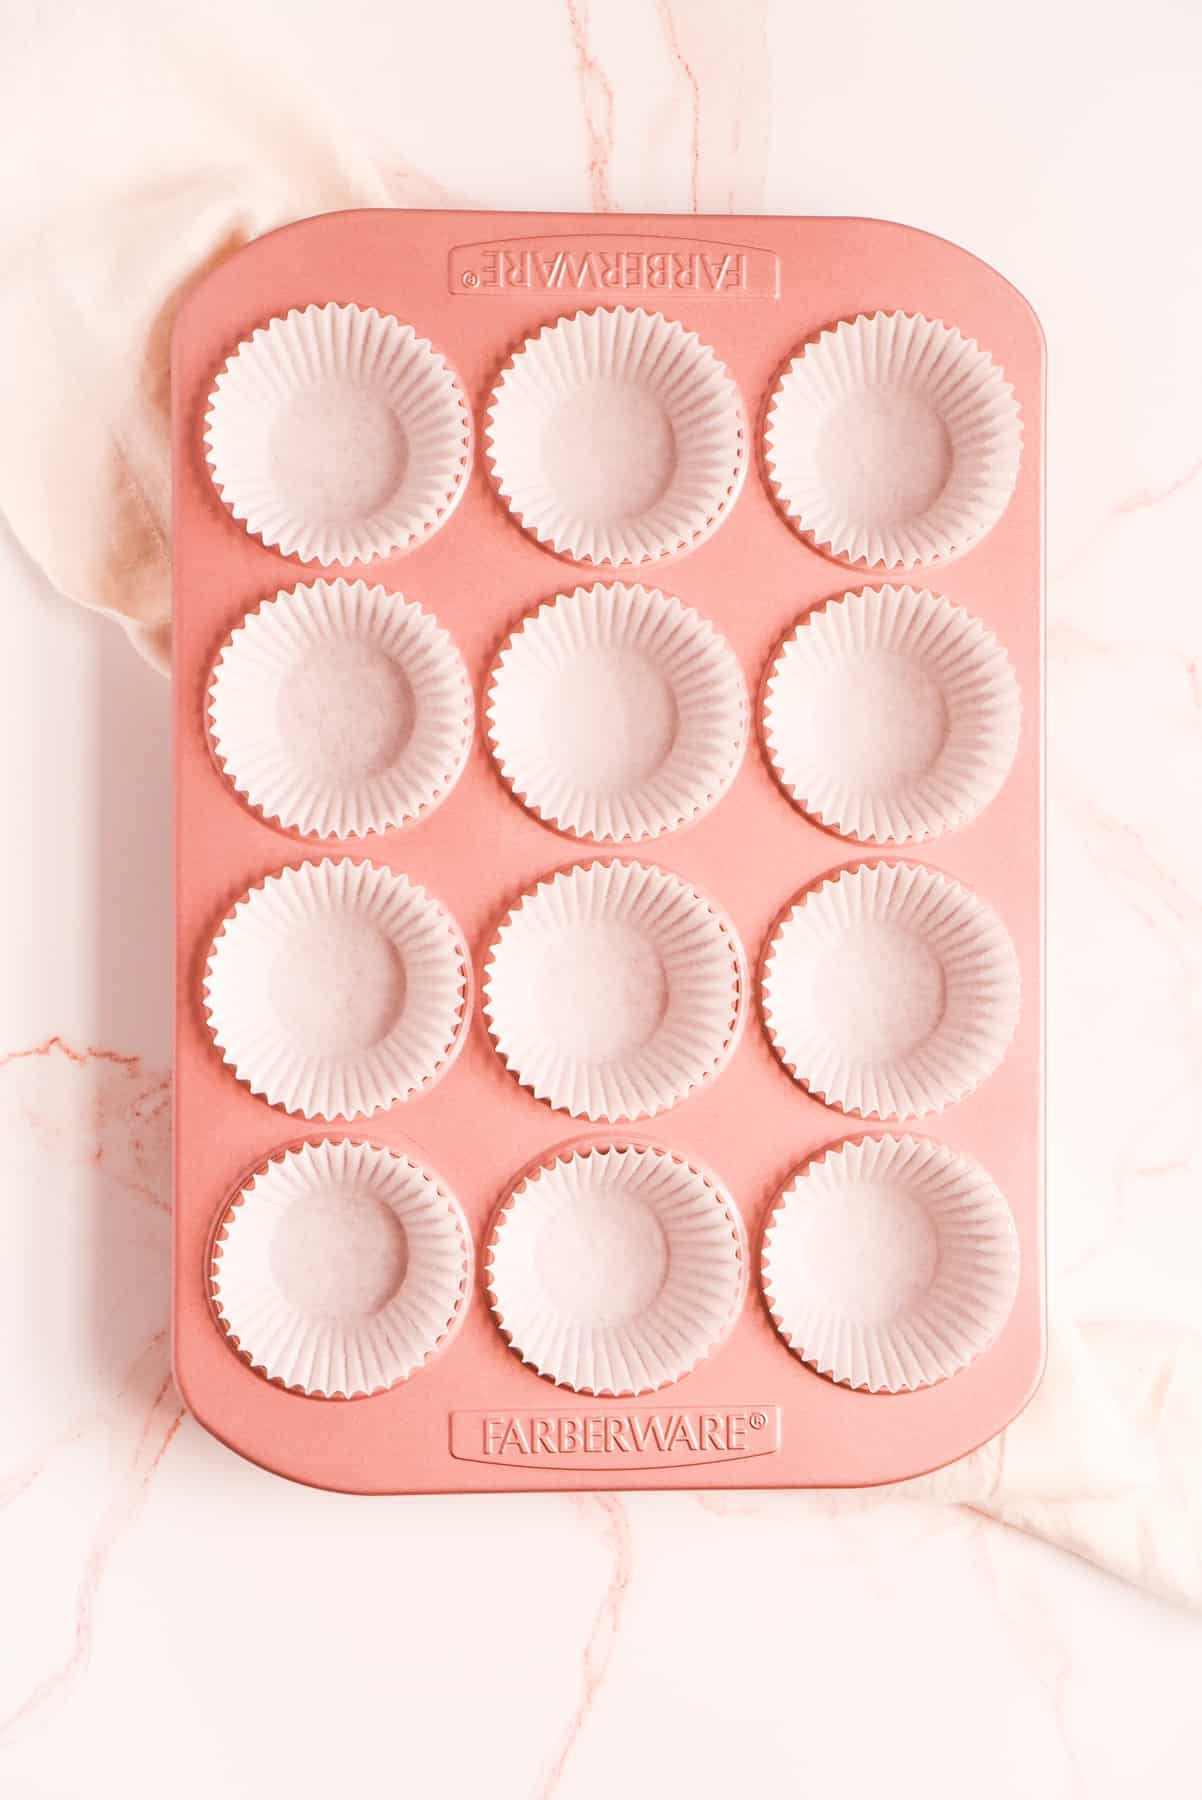 a pink muffin pan lined with white paper cups